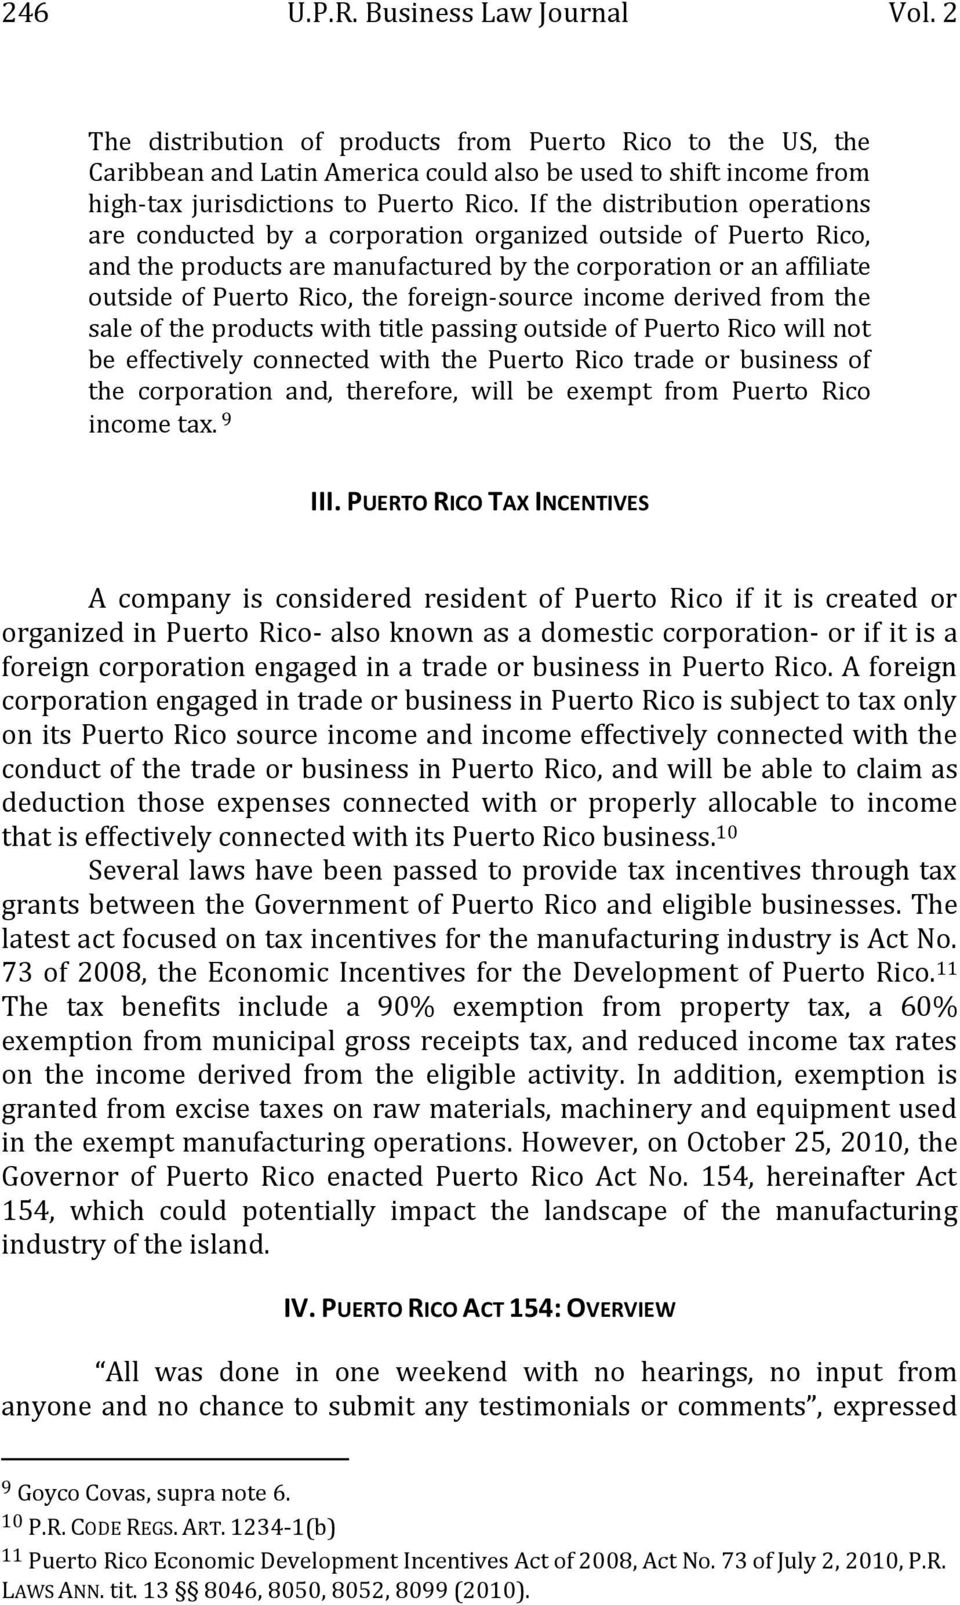 If the distribution operations are conducted by a corporation organized outside of Puerto Rico, and the products are manufactured by the corporation or an affiliate outside of Puerto Rico, the